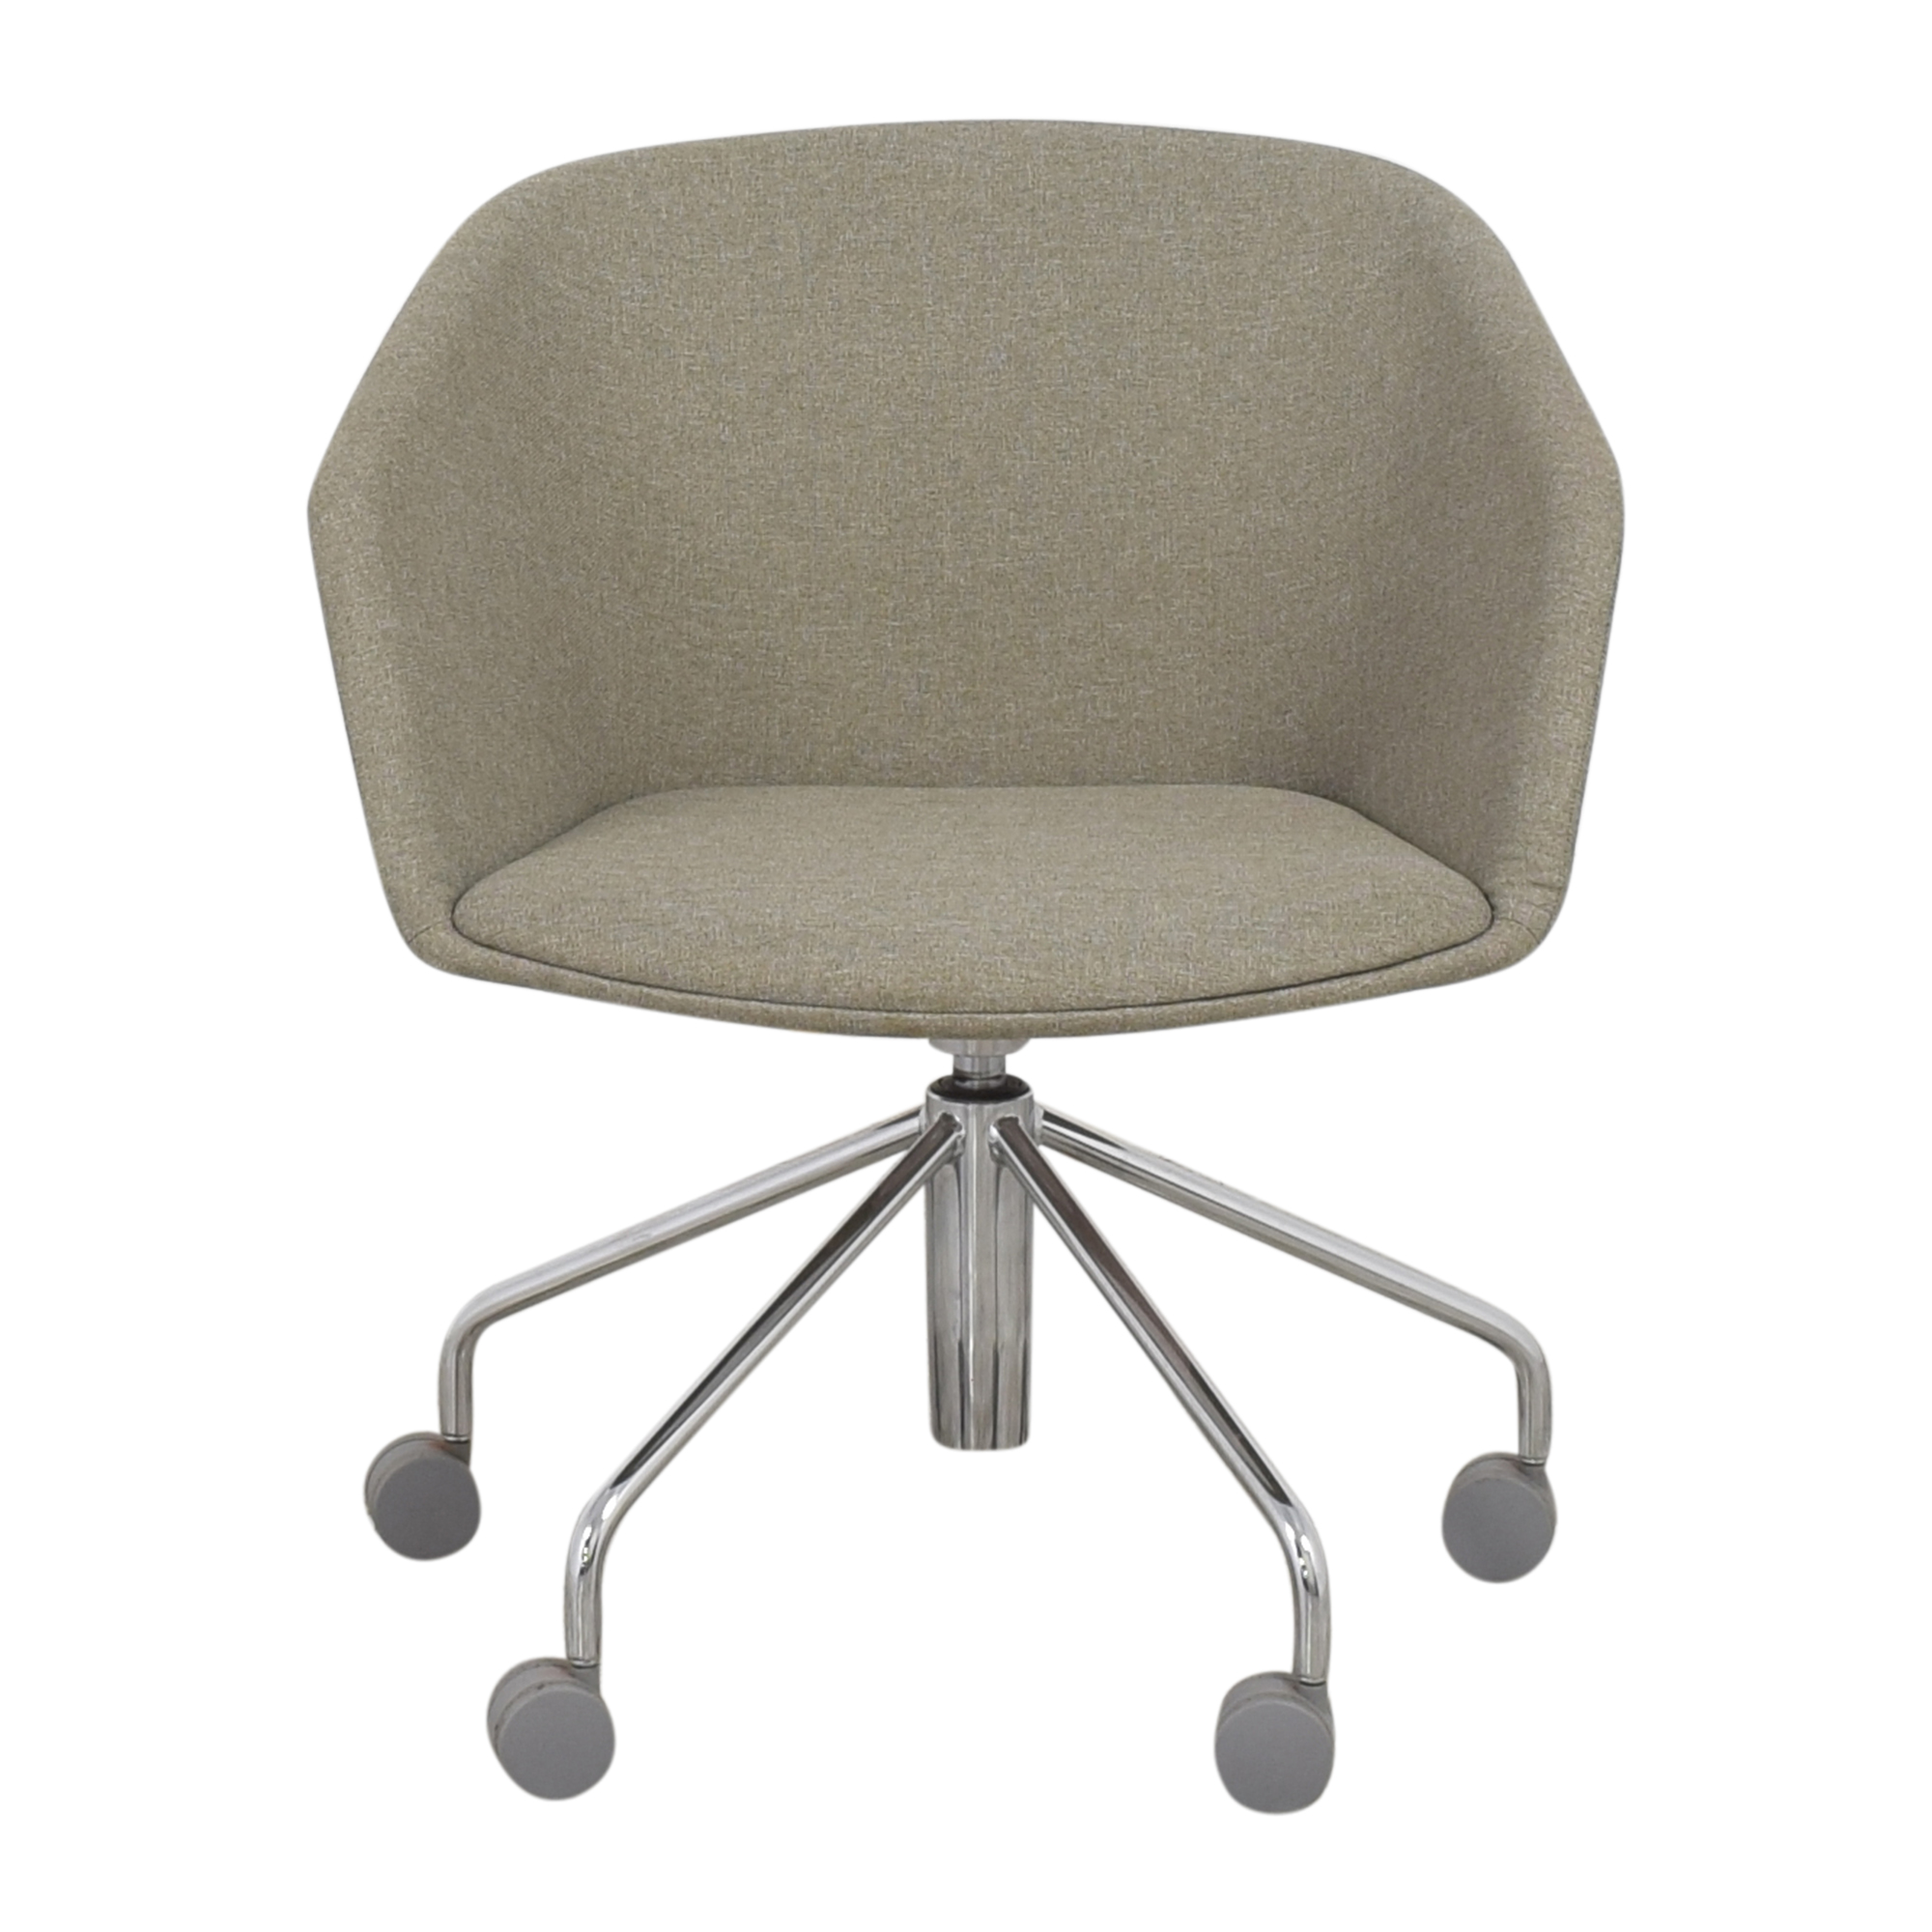 Poppin Pitch Meeting Chair / Home Office Chairs